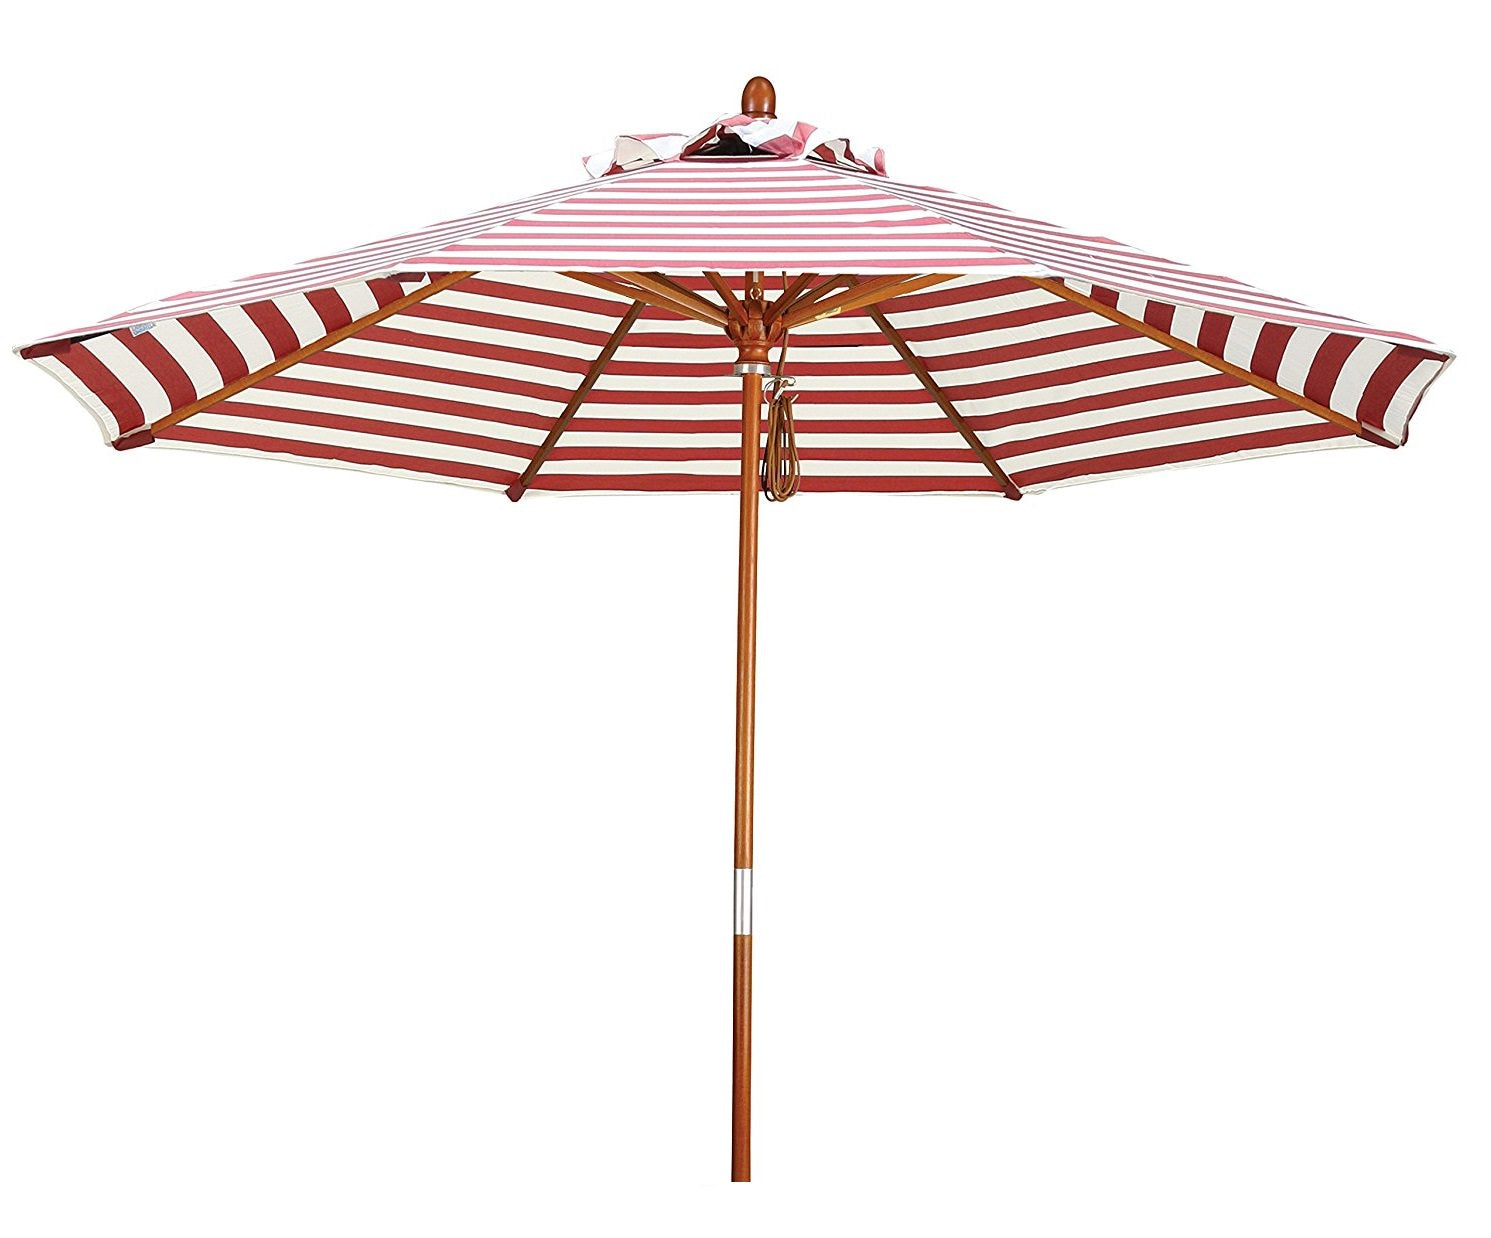 Eclipse Collection 9' Wood Market Umbrella Pulley Open Marenti Wood/Olefin/Red-Natural Stripe